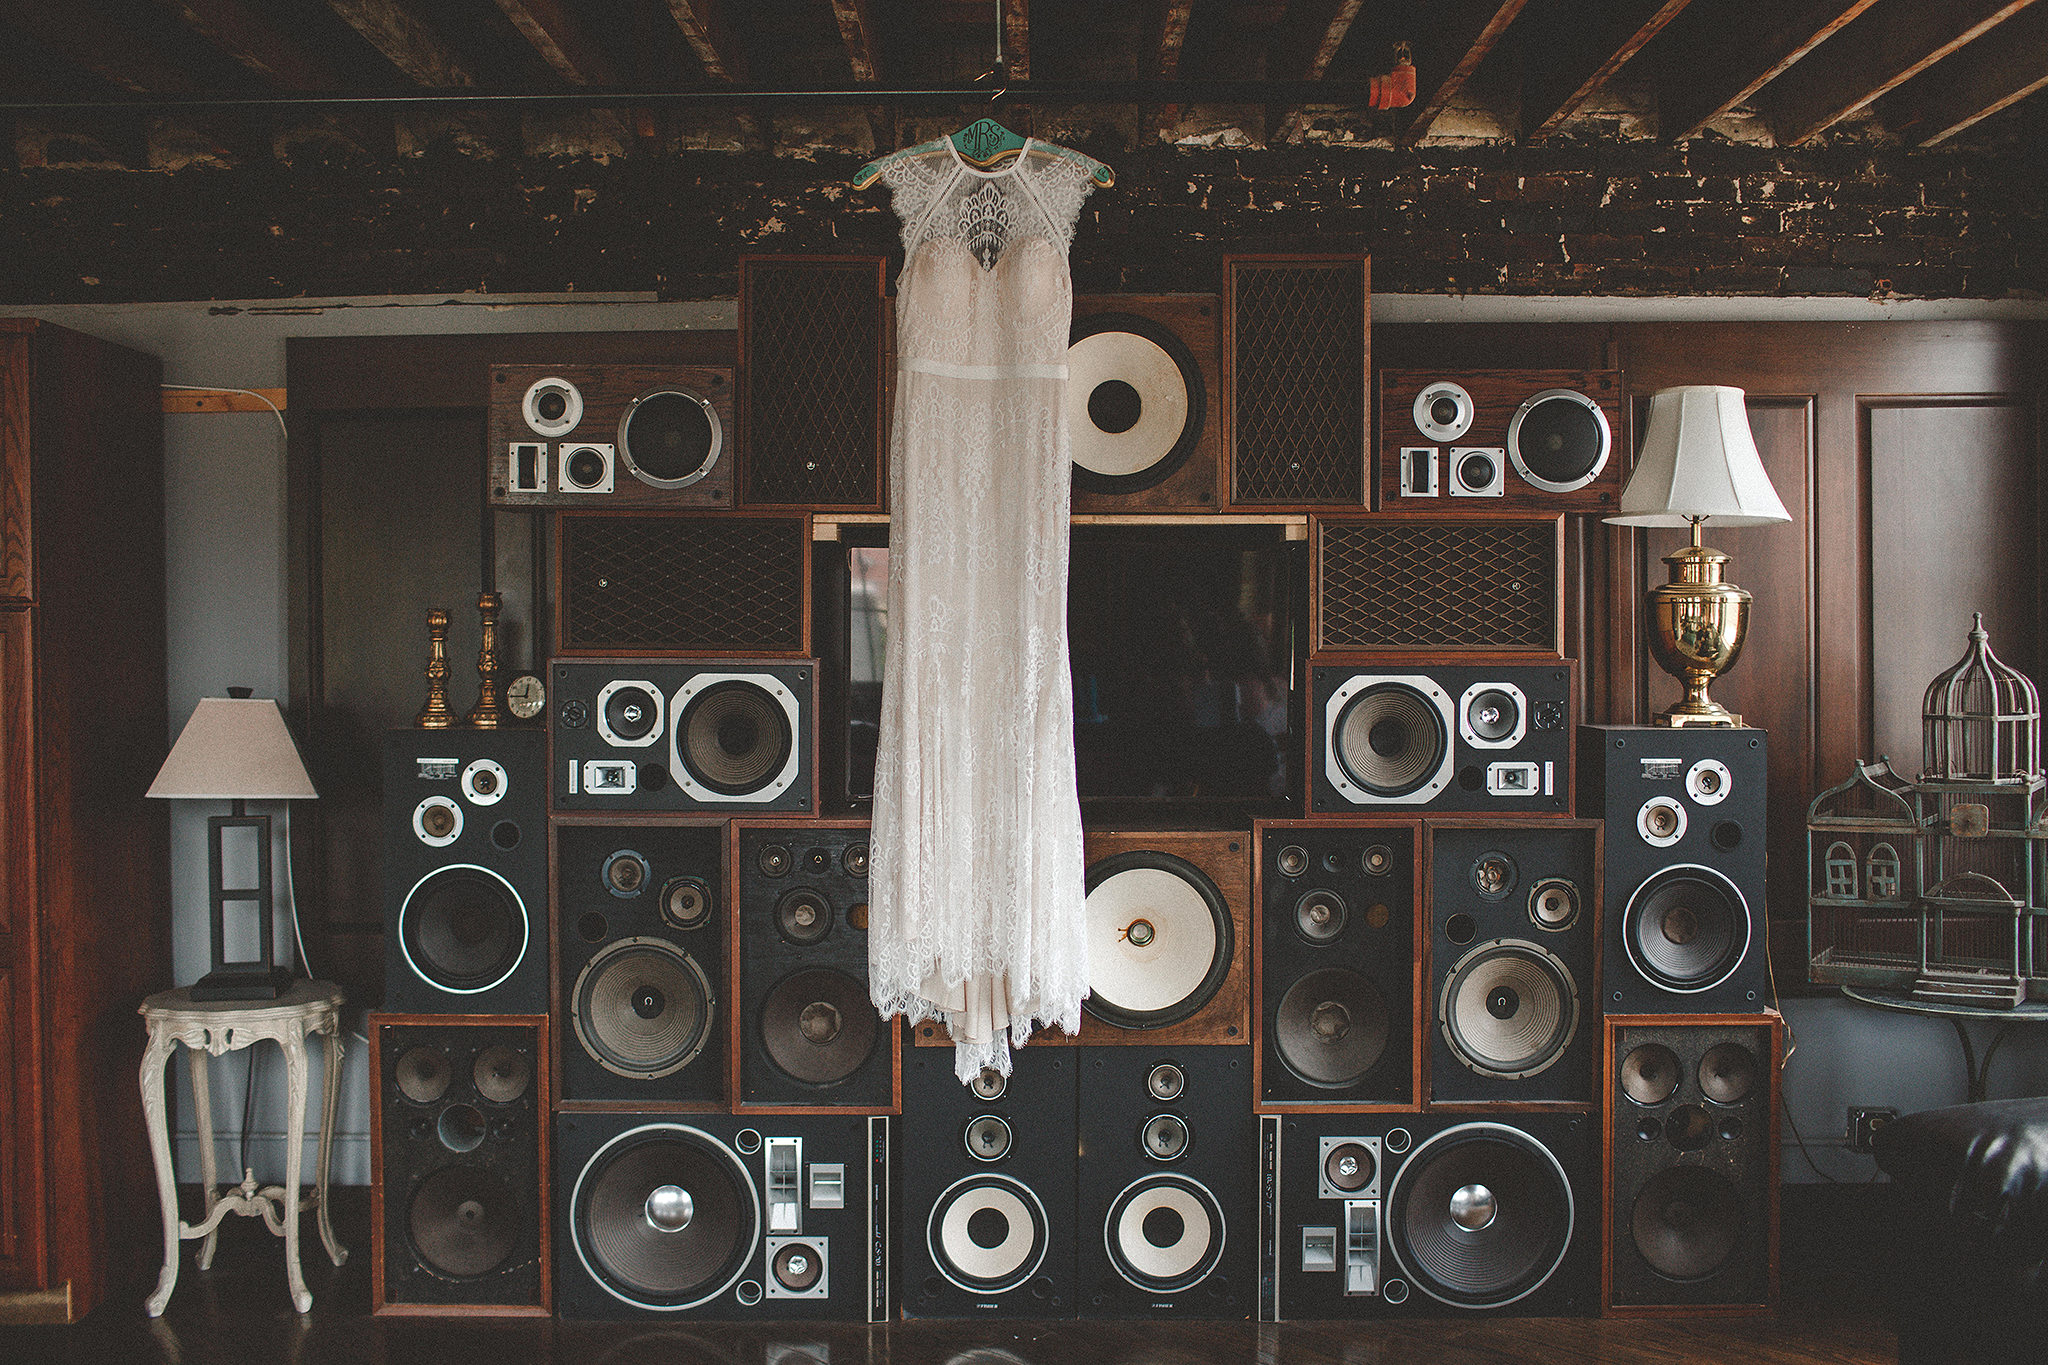 wedding dress hanging in front of vintage speaker wall | ivy house milwaukee photographer | chrissy deming